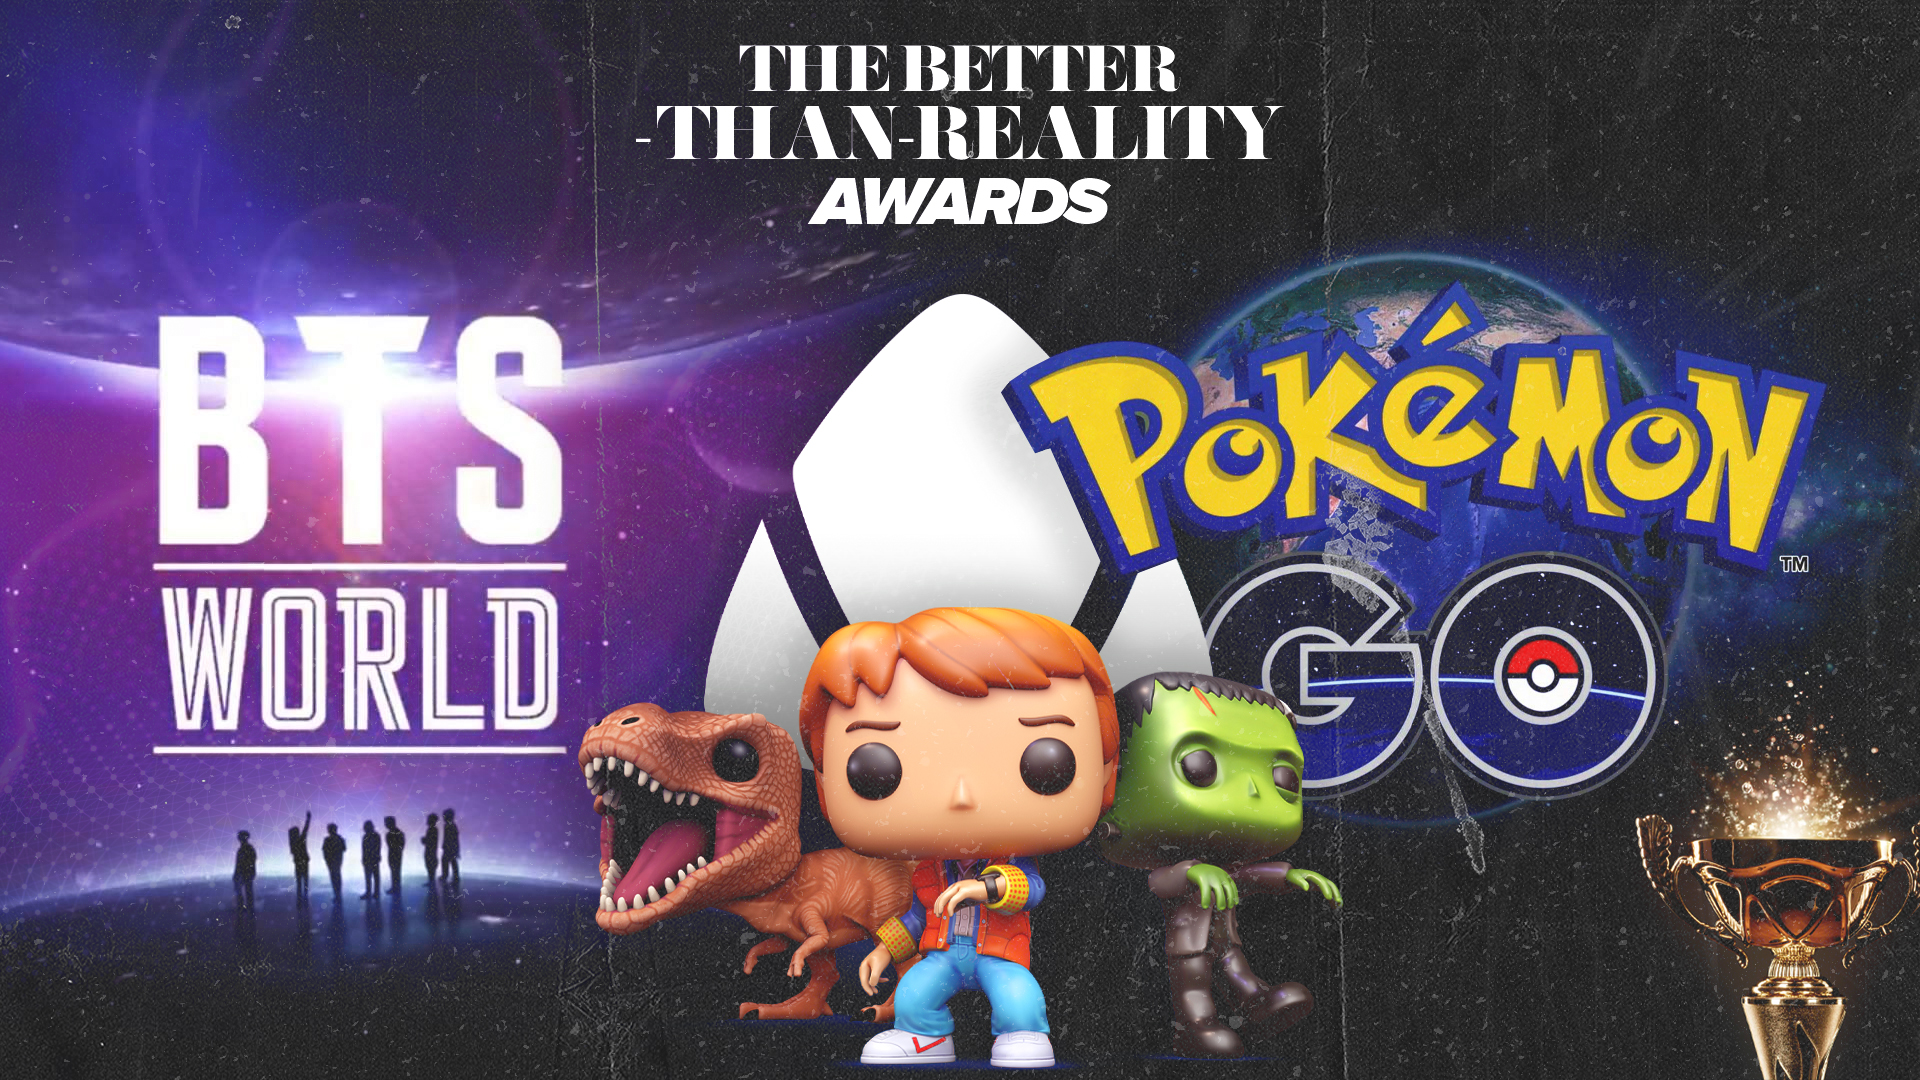 Gaming News – VRFocus Awards, Funko Pop, BTS, and Pokemon Go!